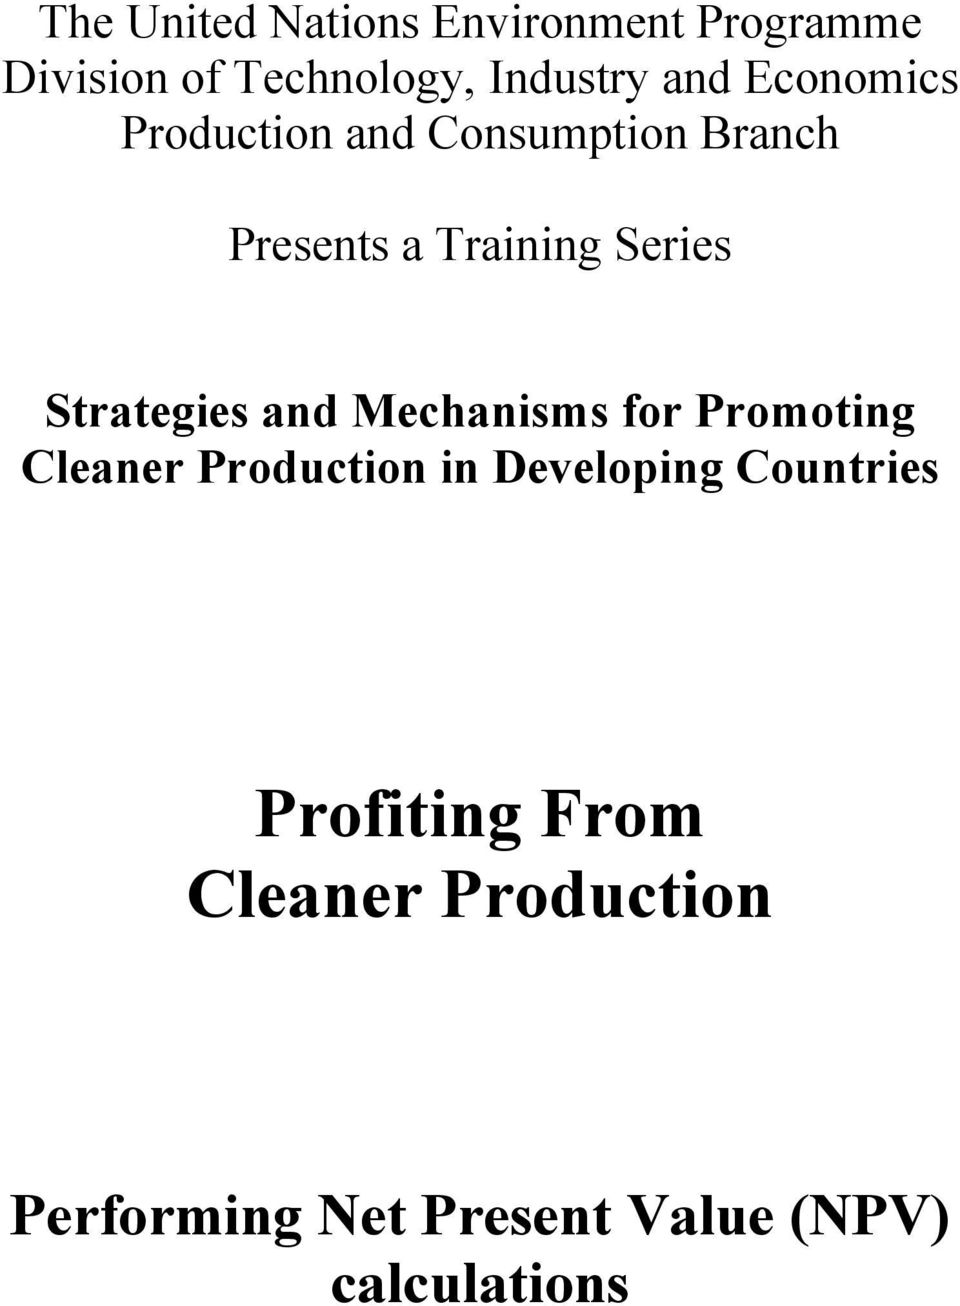 Strategies and Mechanisms for Promoting Cleaner Production in Developing